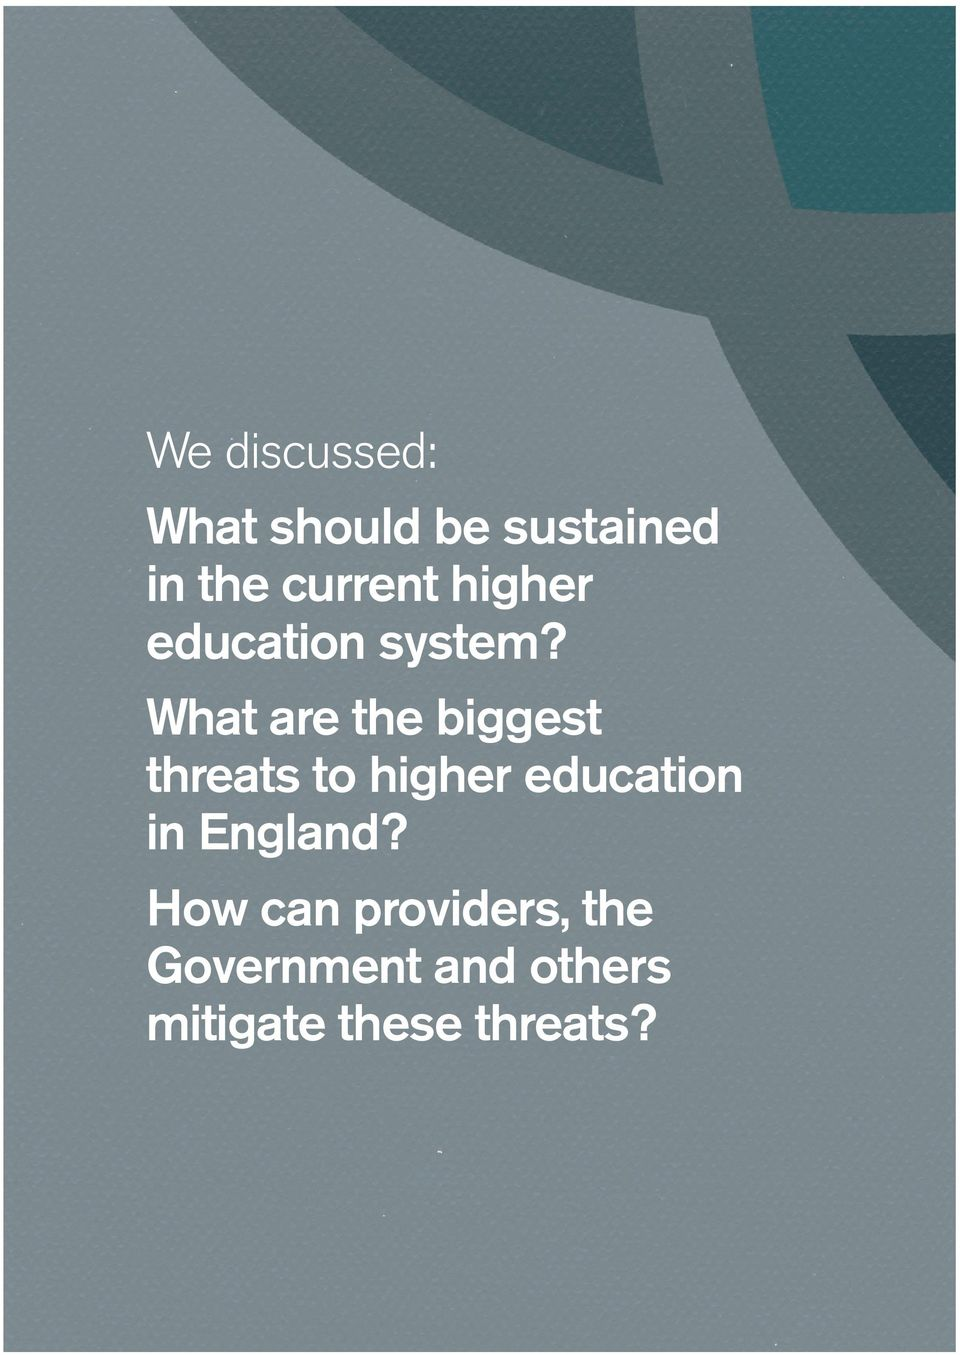 What are the biggest threats to higher education in